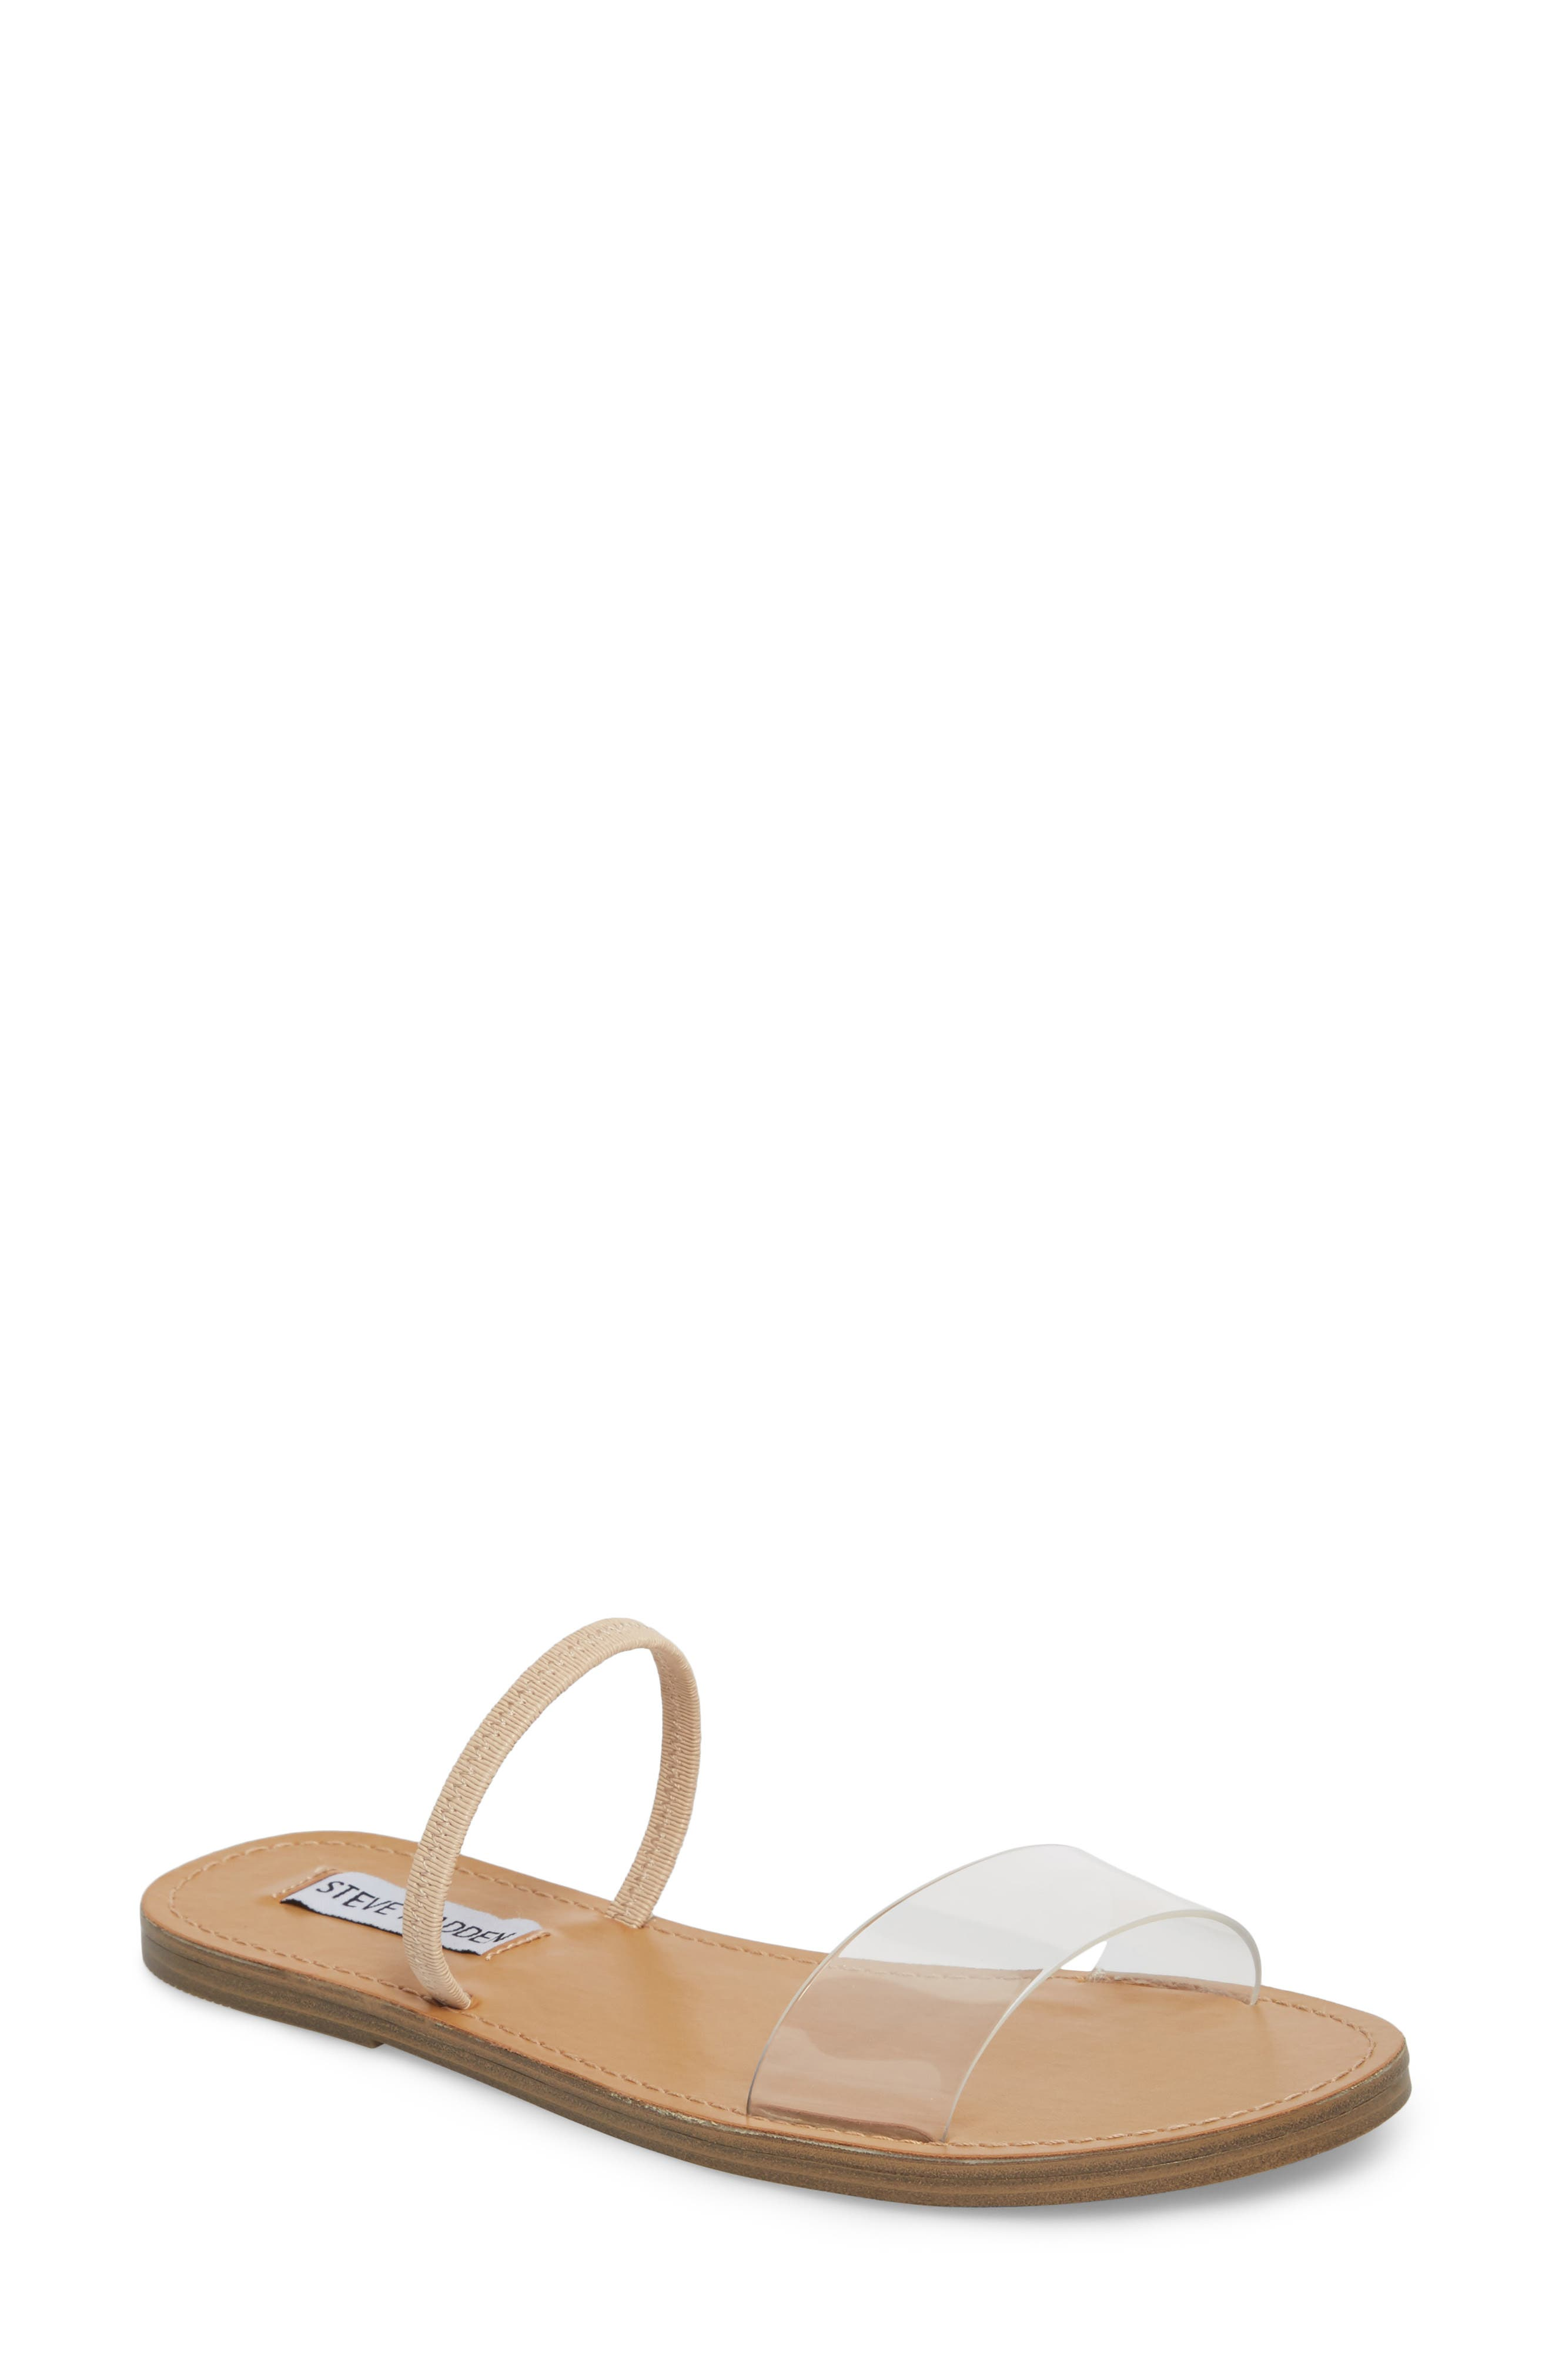 Dasha Strappy Slide Sandal,                             Main thumbnail 1, color,                             Clear